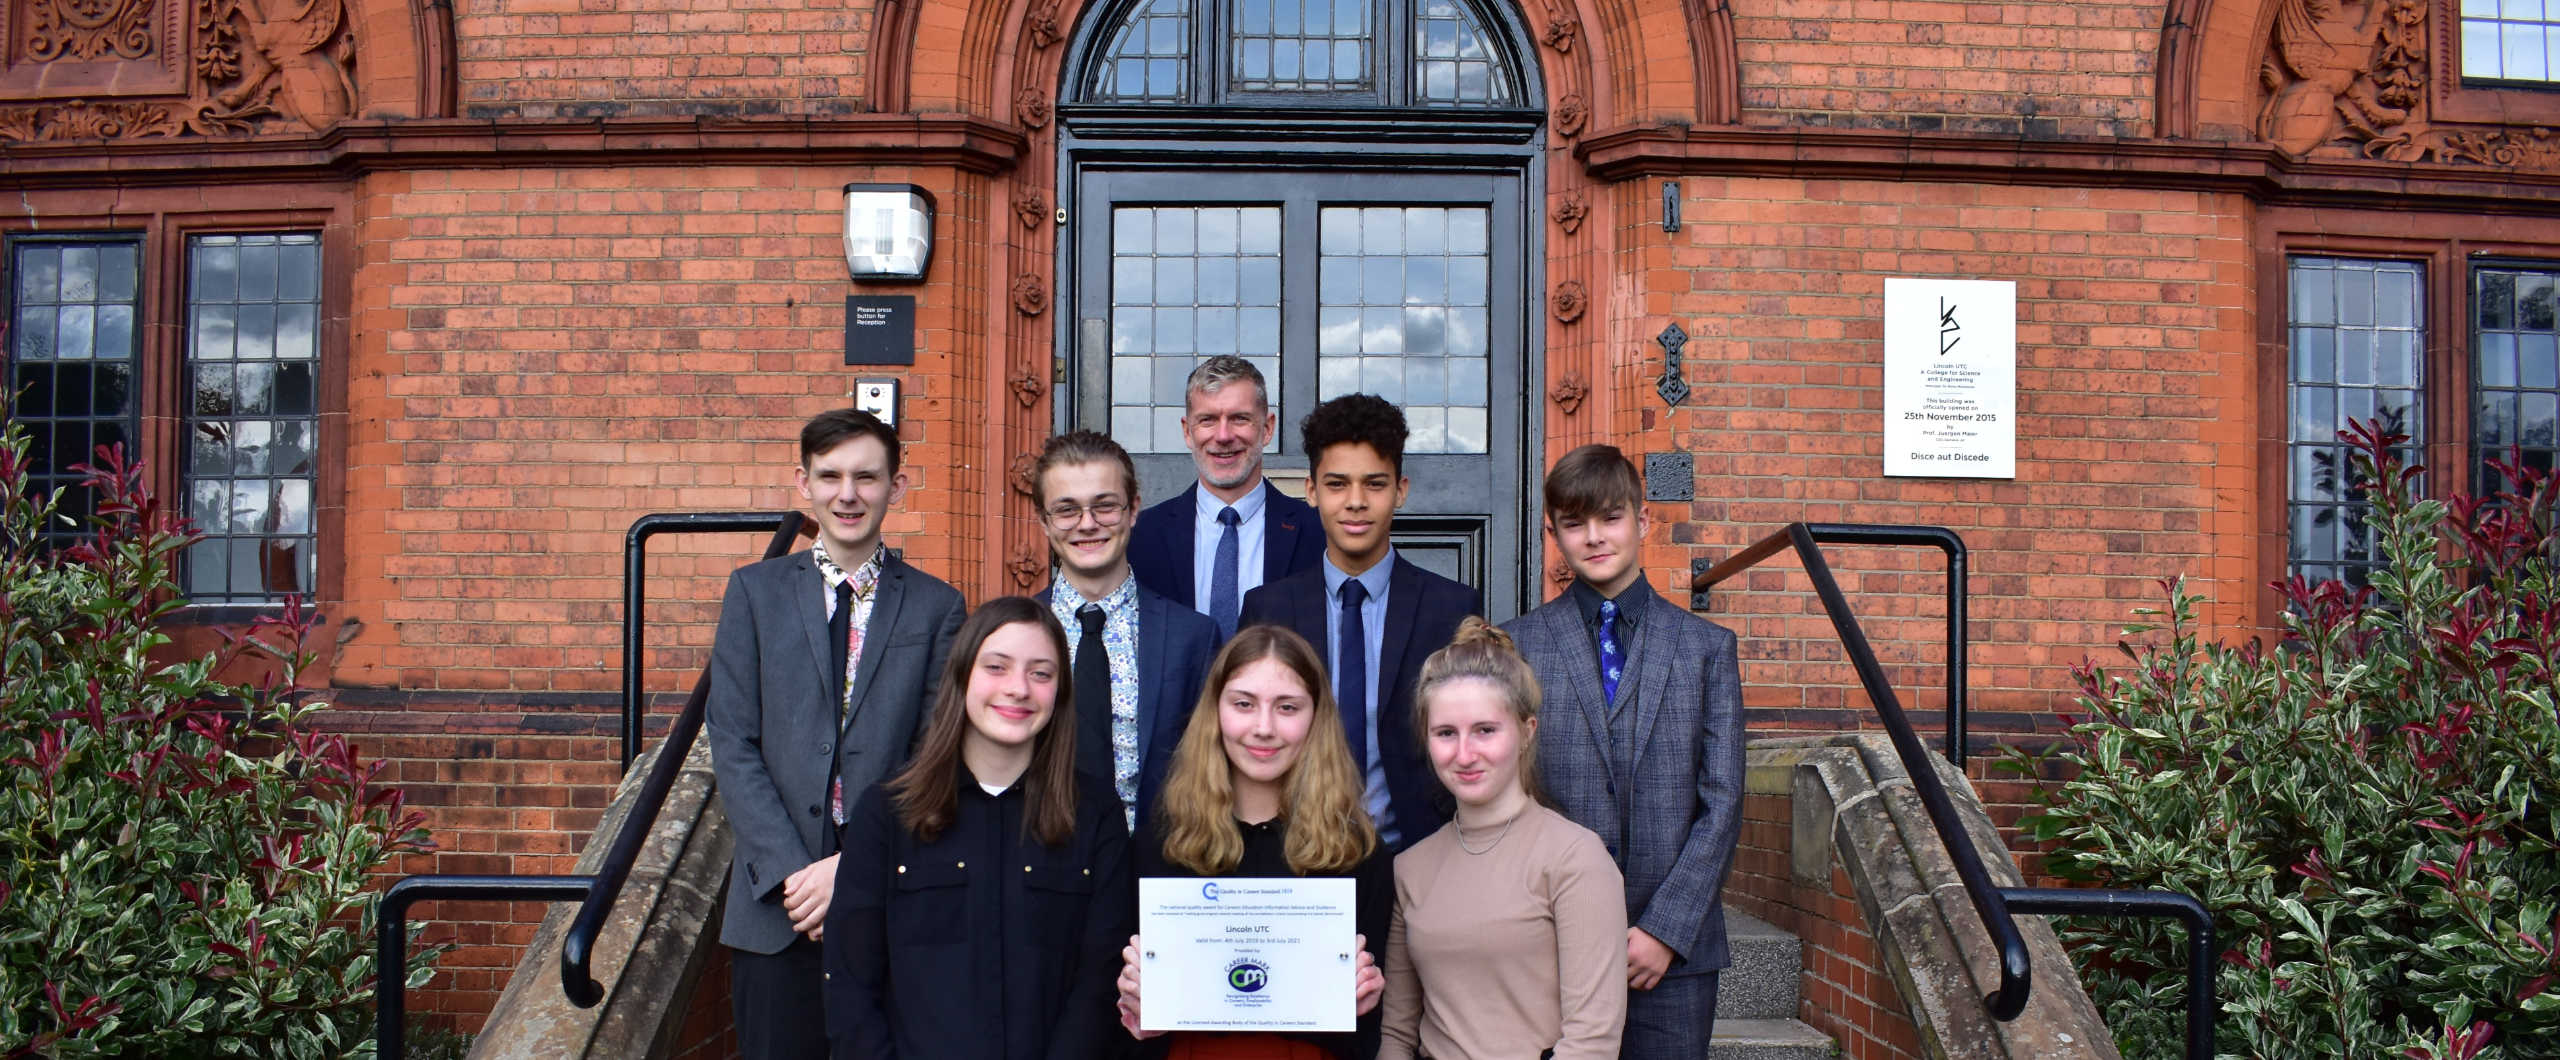 Lincoln UTC Awarded for Careers Excellence